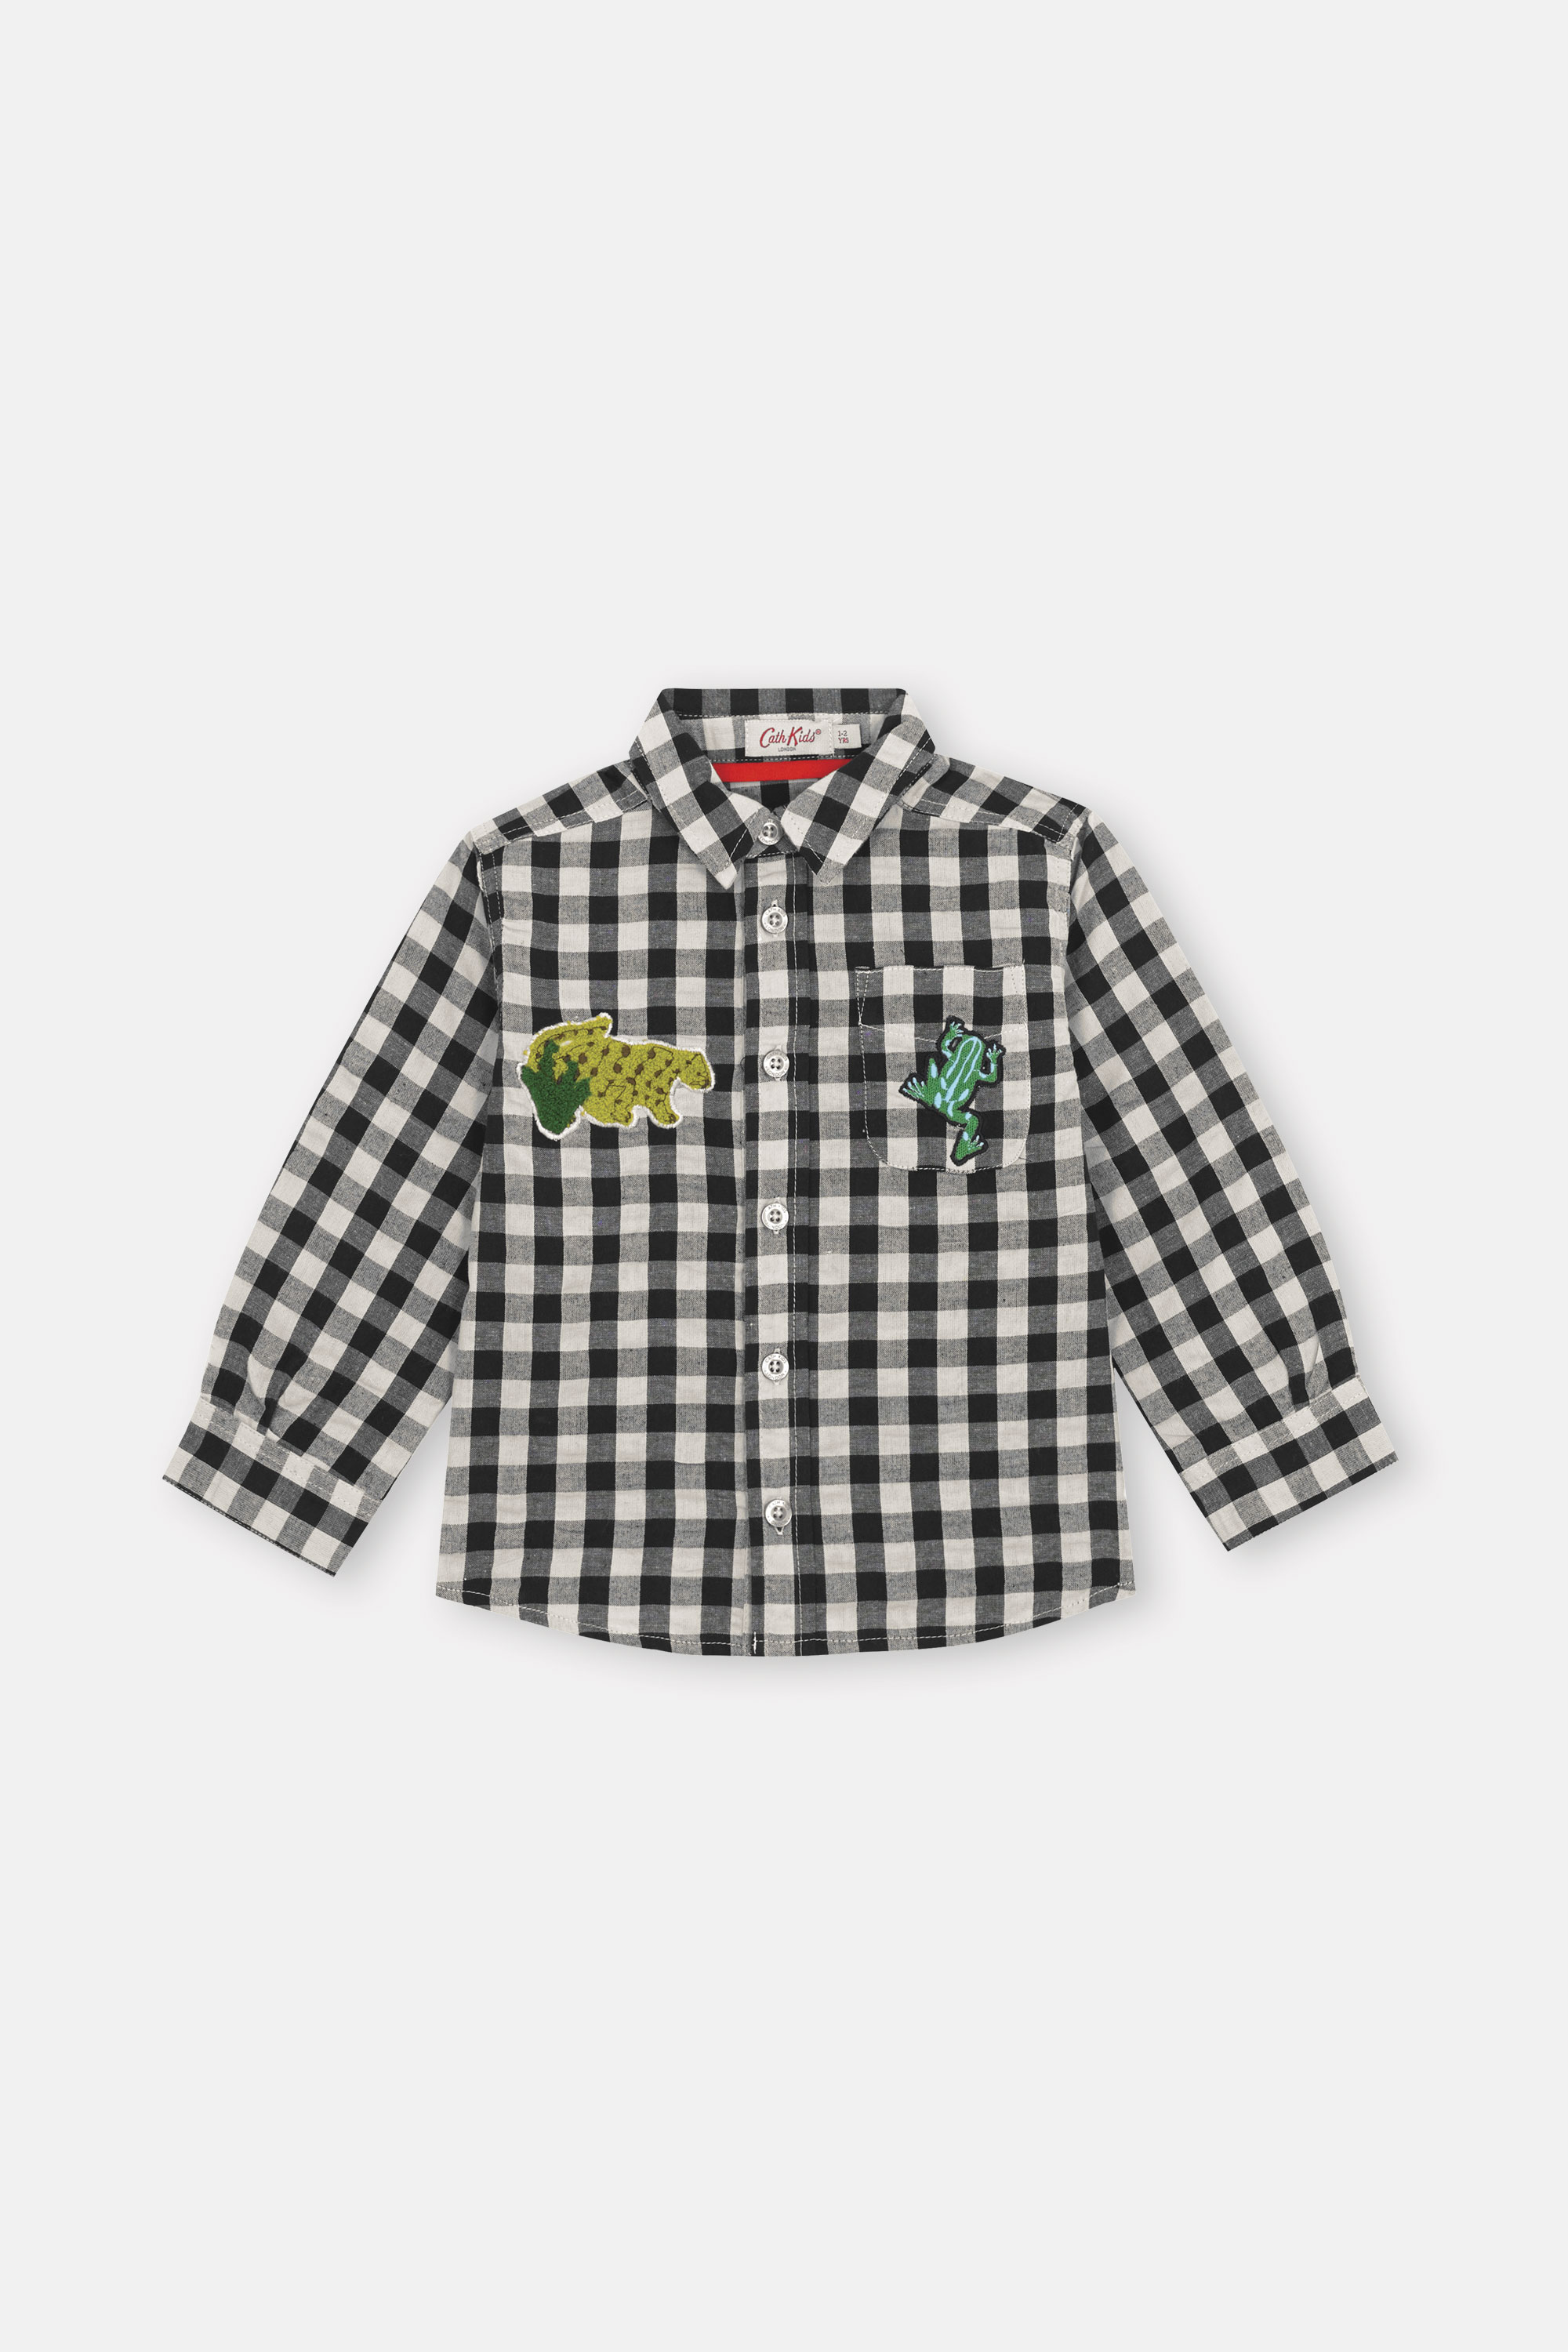 Cath Kidston Gingham Check Long Sleeve Oliver Shirt in Charcoal Stone, 3-4 yr